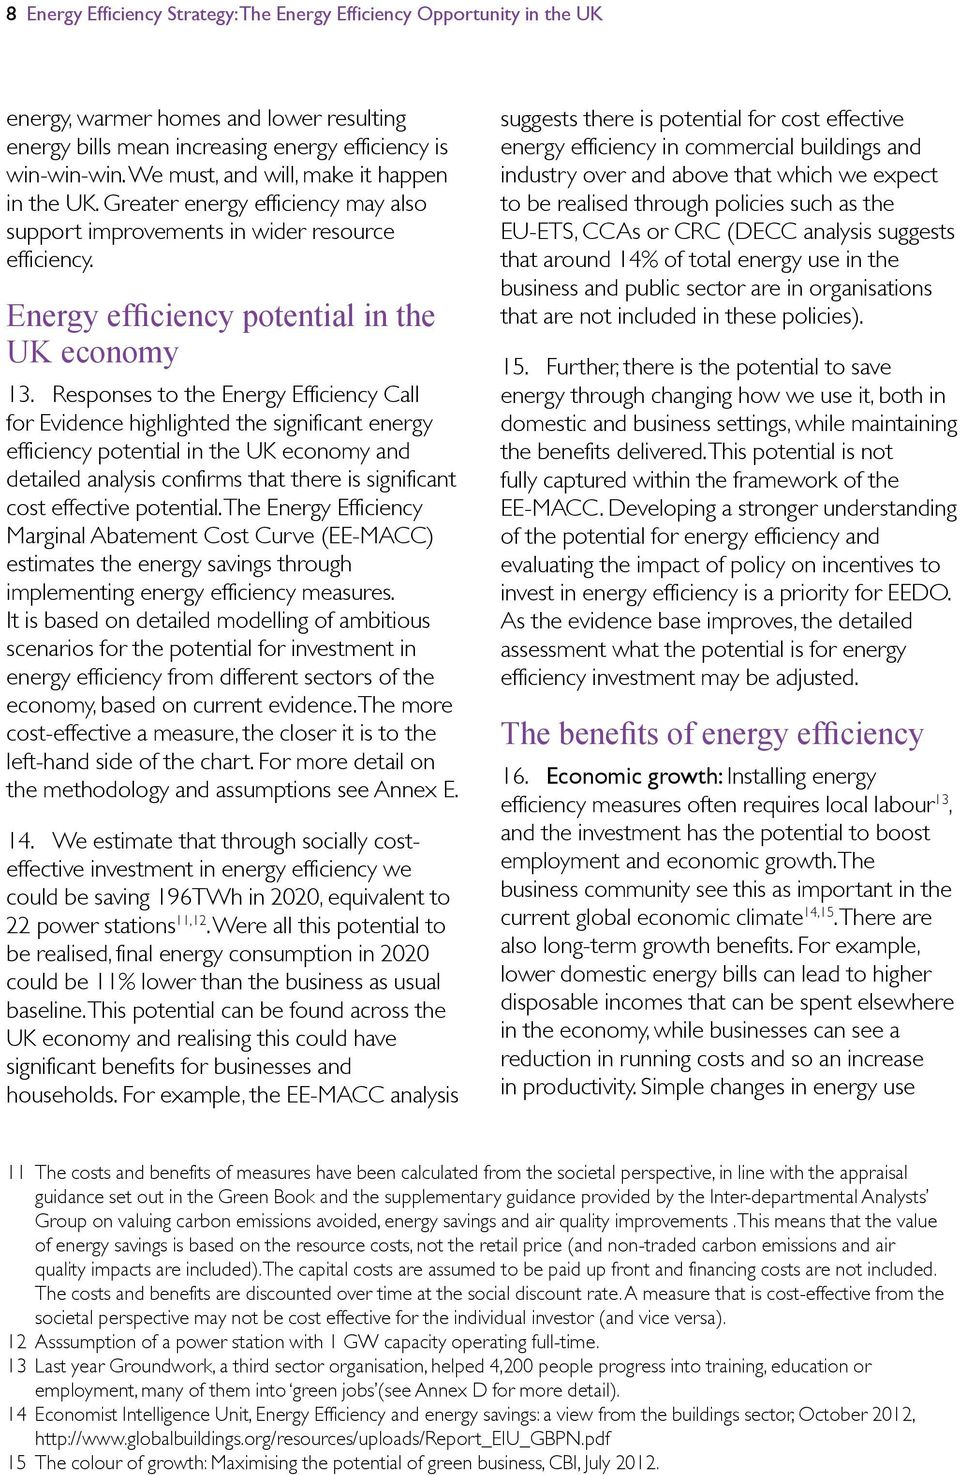 Responses to the Energy Efficiency Call for Evidence highlighted the significant energy efficiency potential in the UK economy and detailed analysis confirms that there is significant cost effective